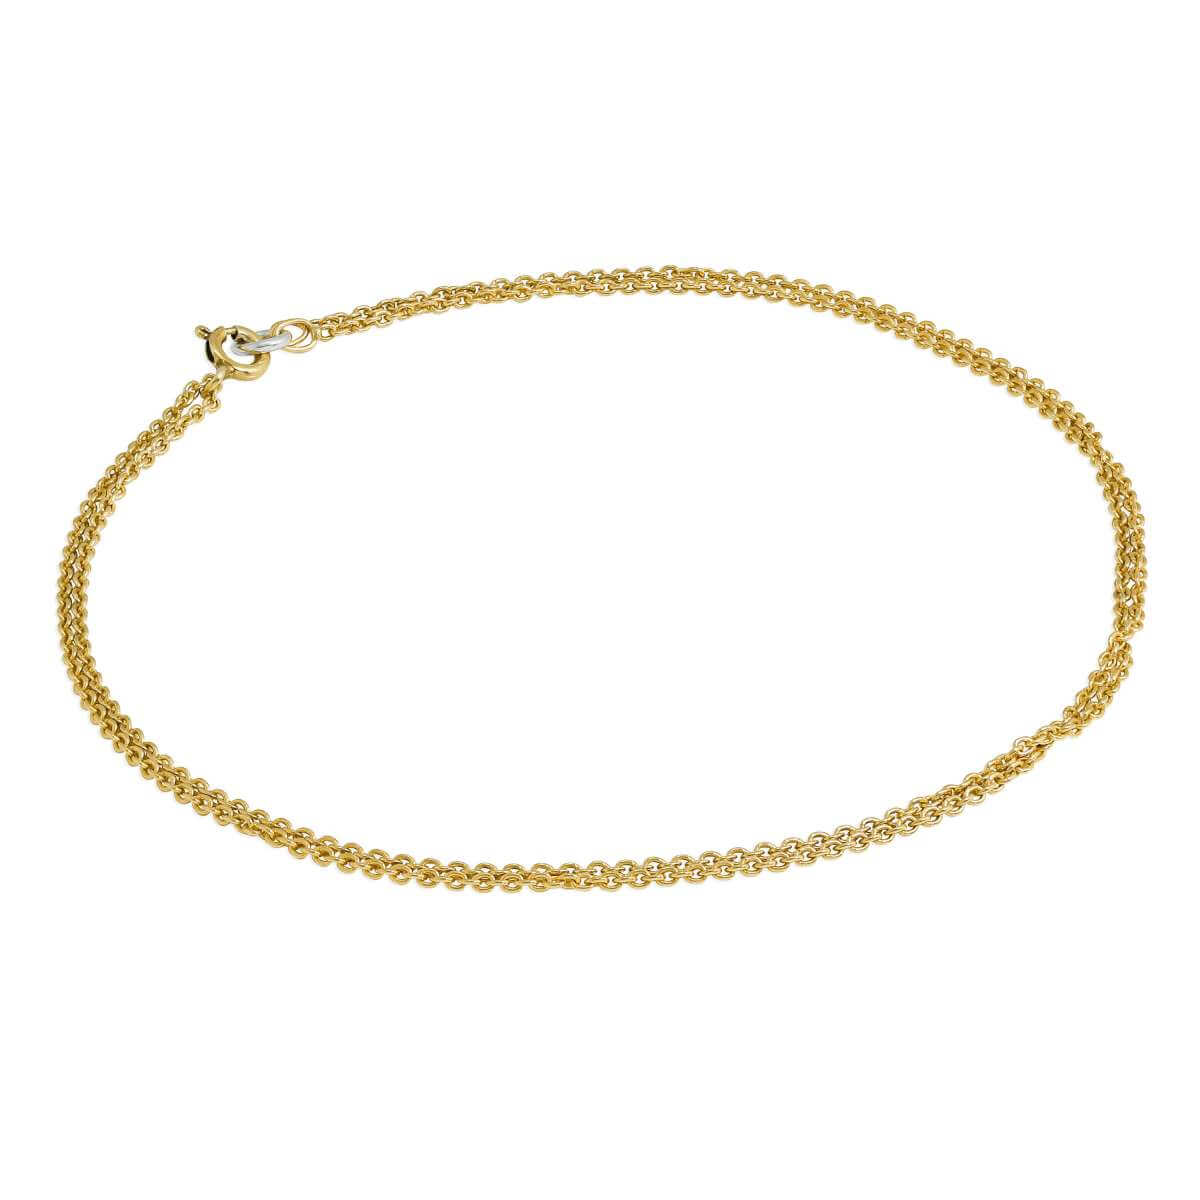 Gold Plated Sterling Silver 1mm Cable Double Chain Anklet - 10 Inches